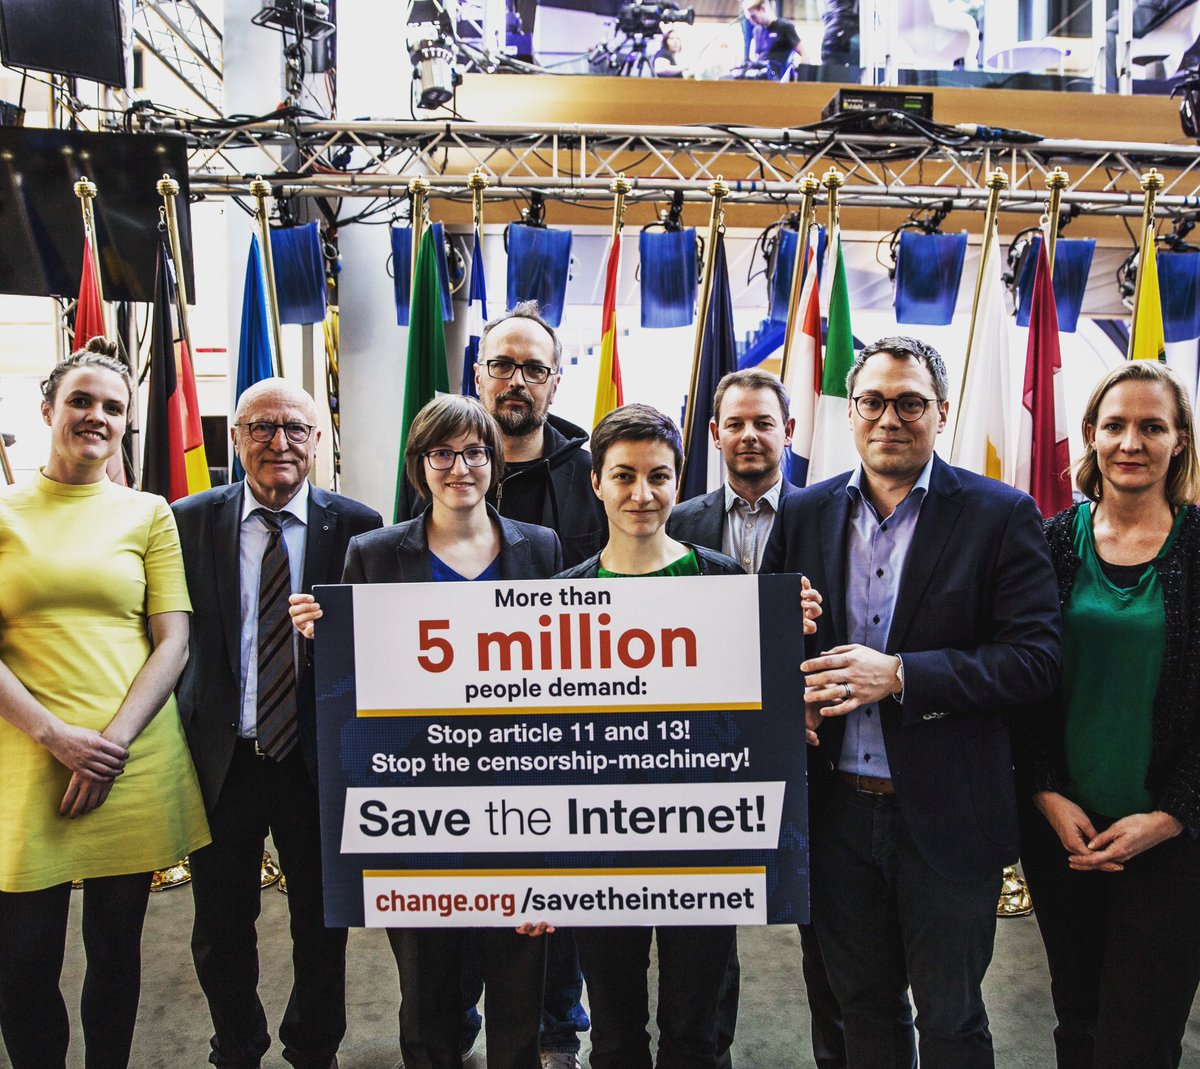 Julia Reda's photo on #SaveTheInternet